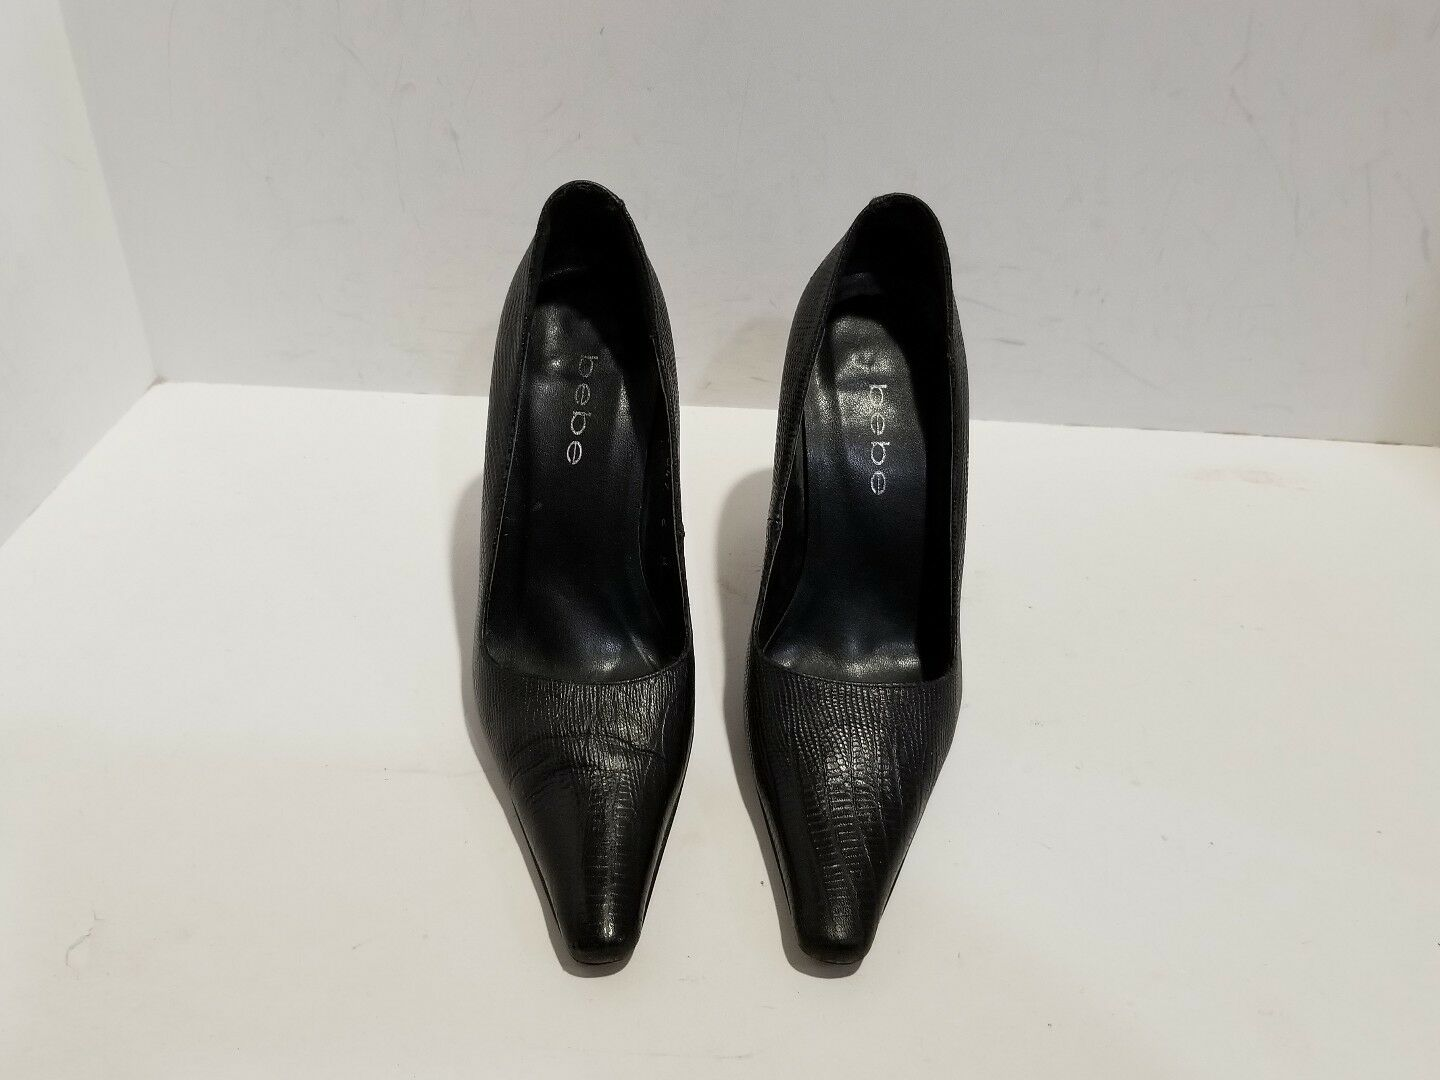 Bebe Womens Black Leather 6 Heels Size 6 Leather M d2a12e